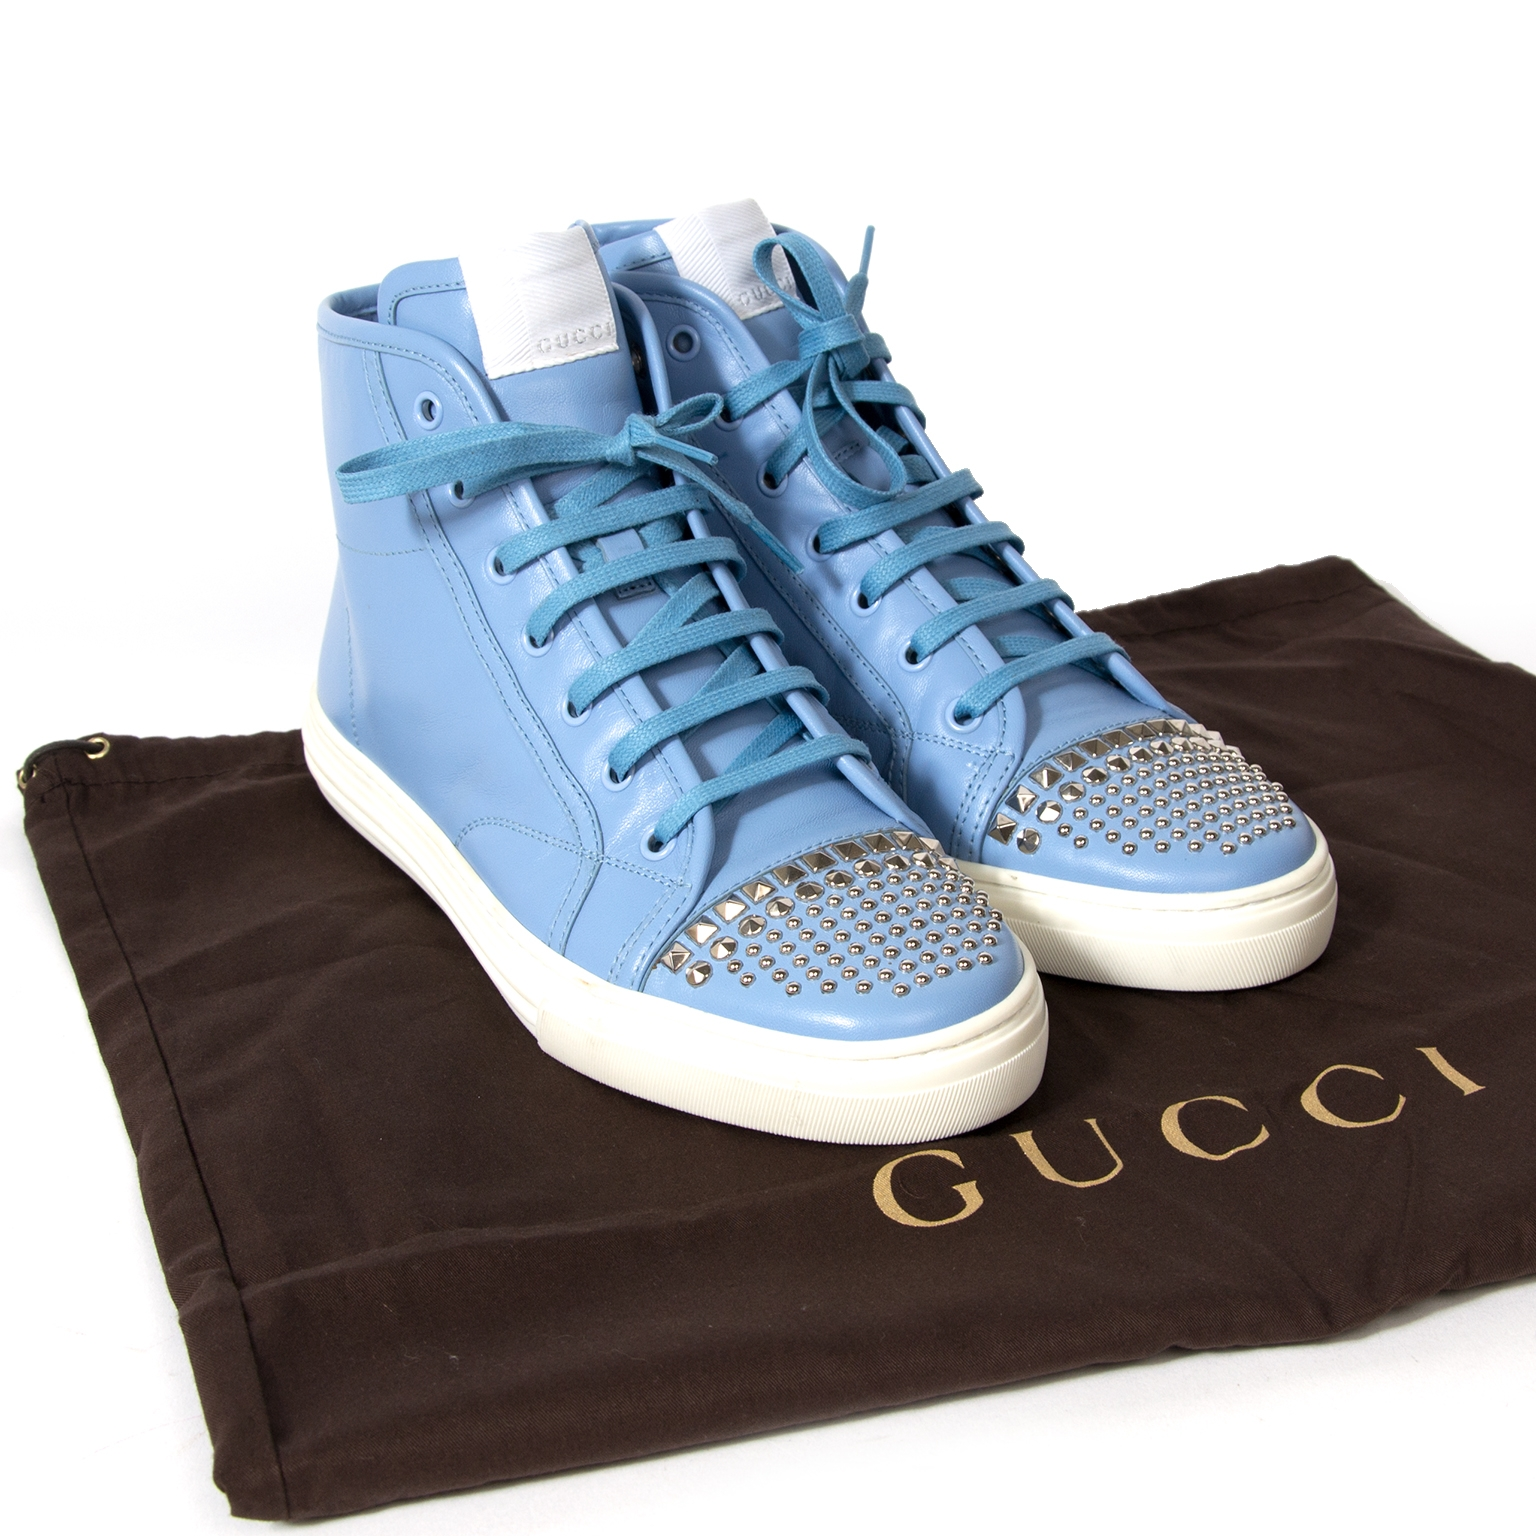 gucci high top baby blue sneakers now for sale at labellov vintage